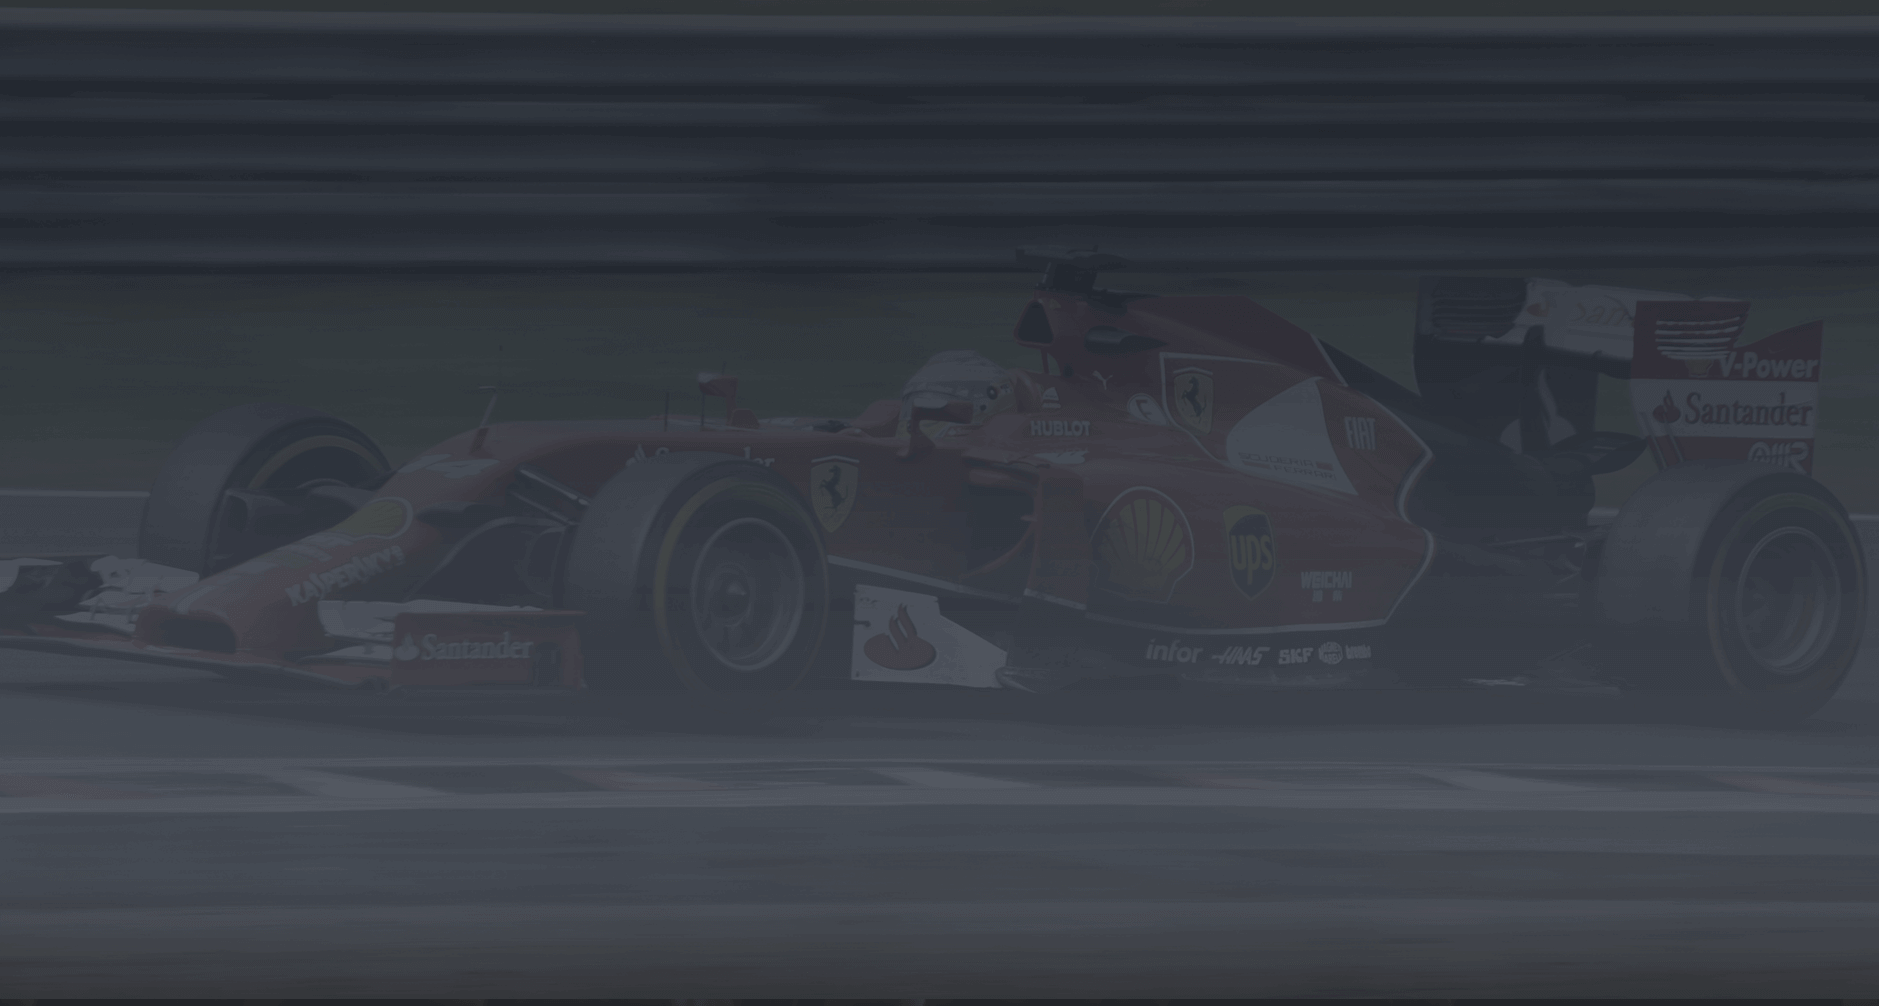 f1 work example header